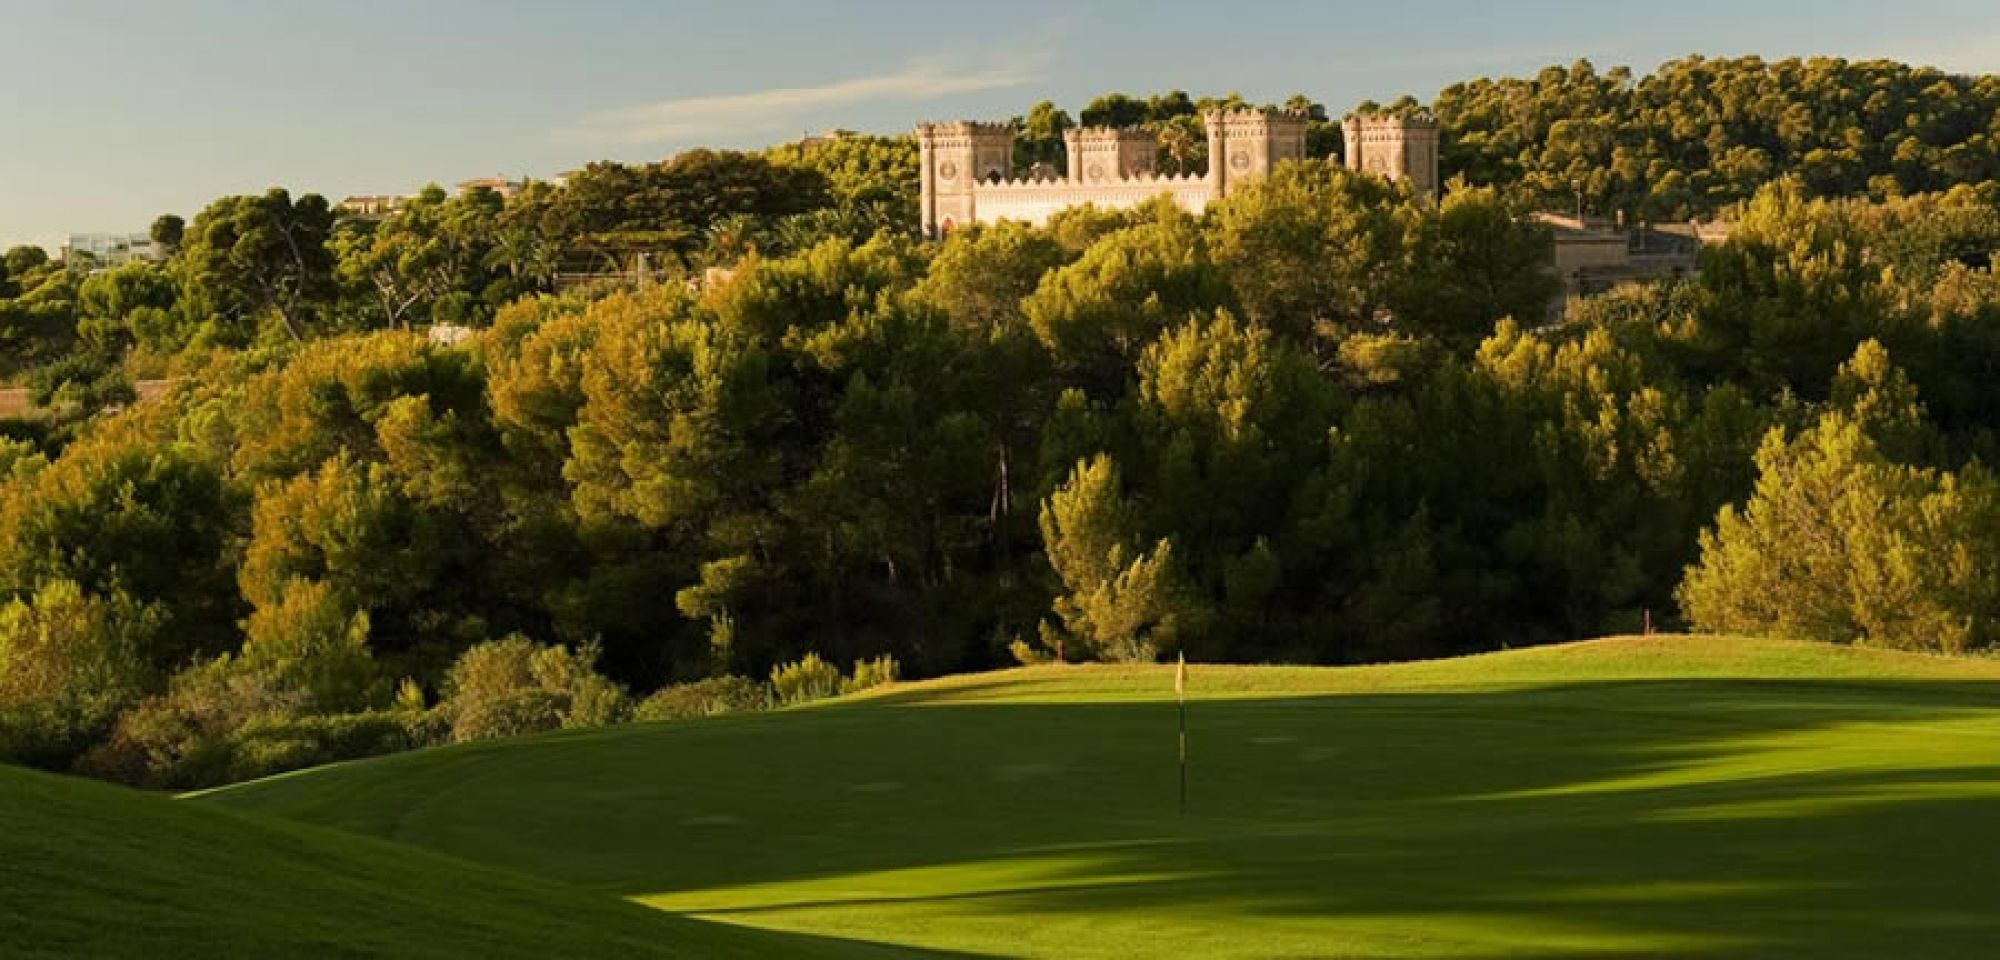 Real Golf de Bendinat consists of lots of the most excellent golf course near Mallorca